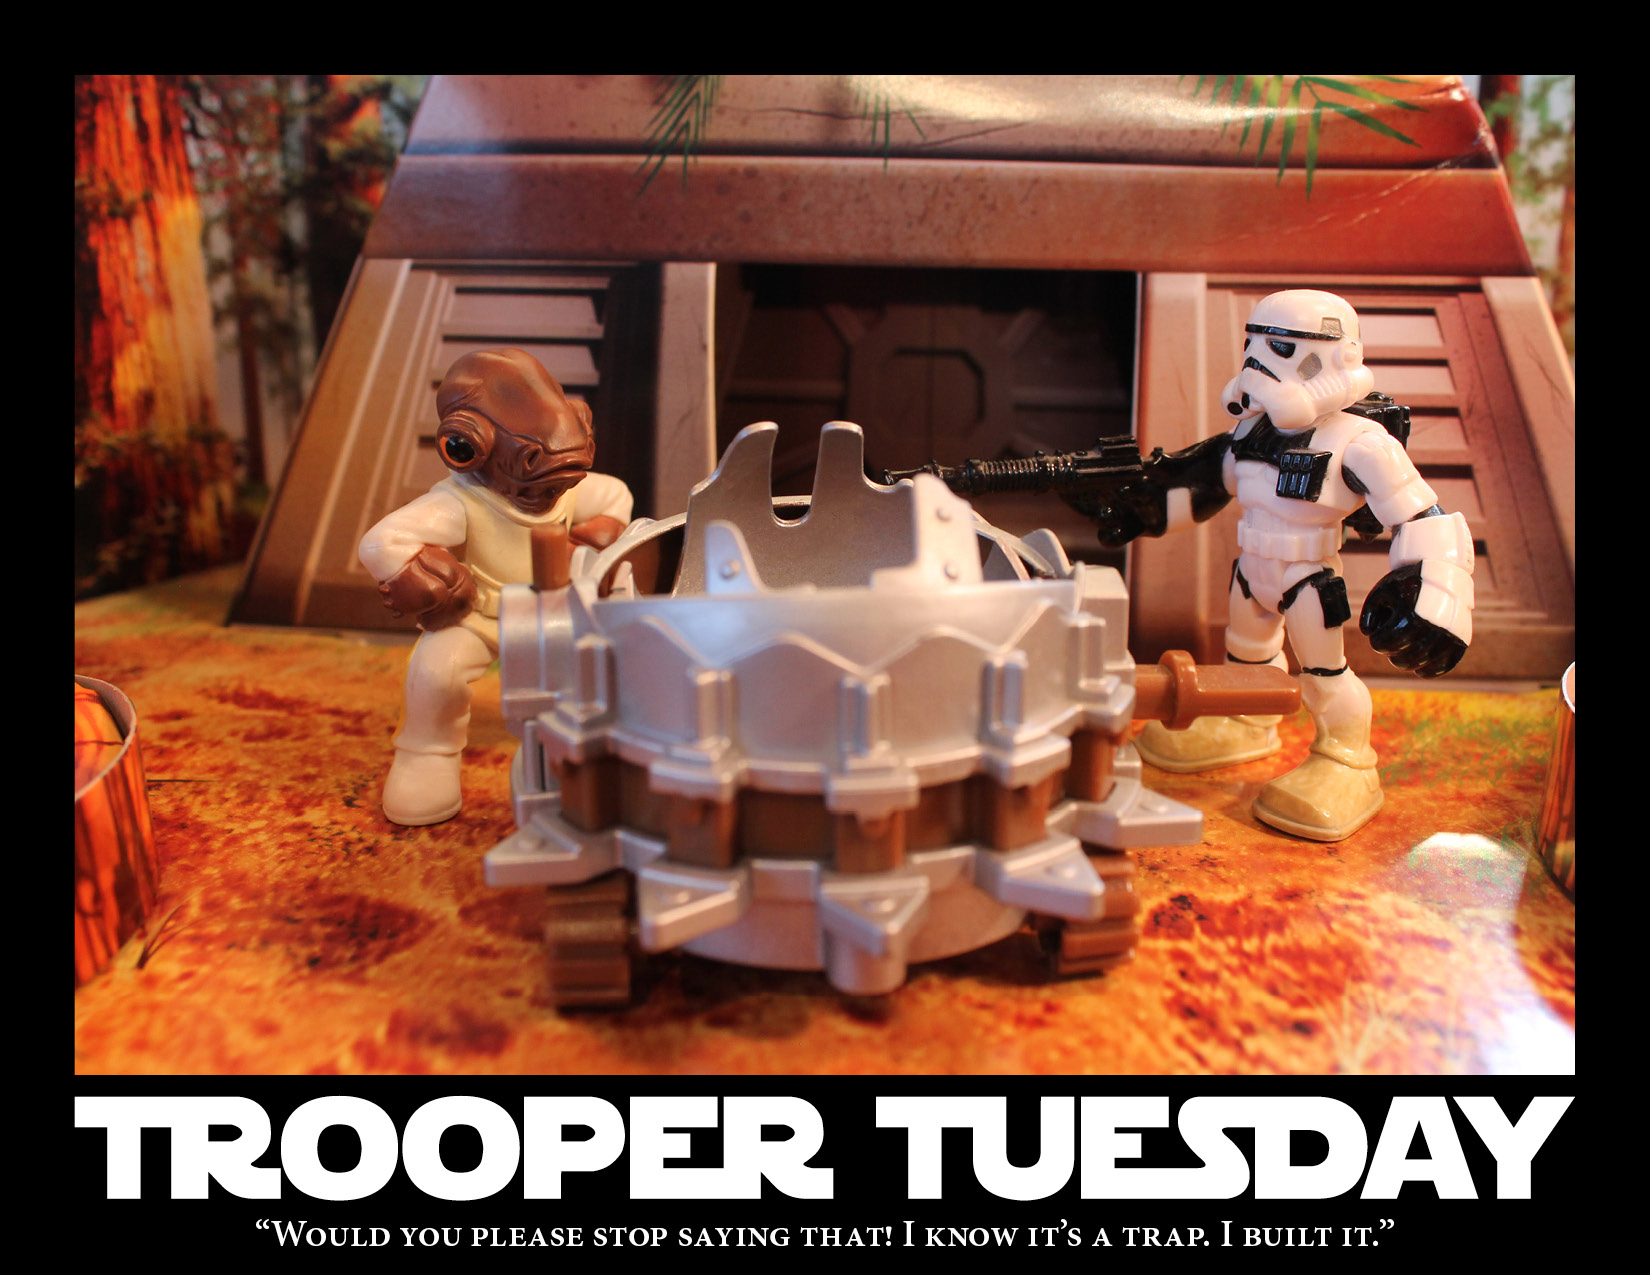 Admiral Ackbar and a Stormtrooper stand around Sandy's newest trap.